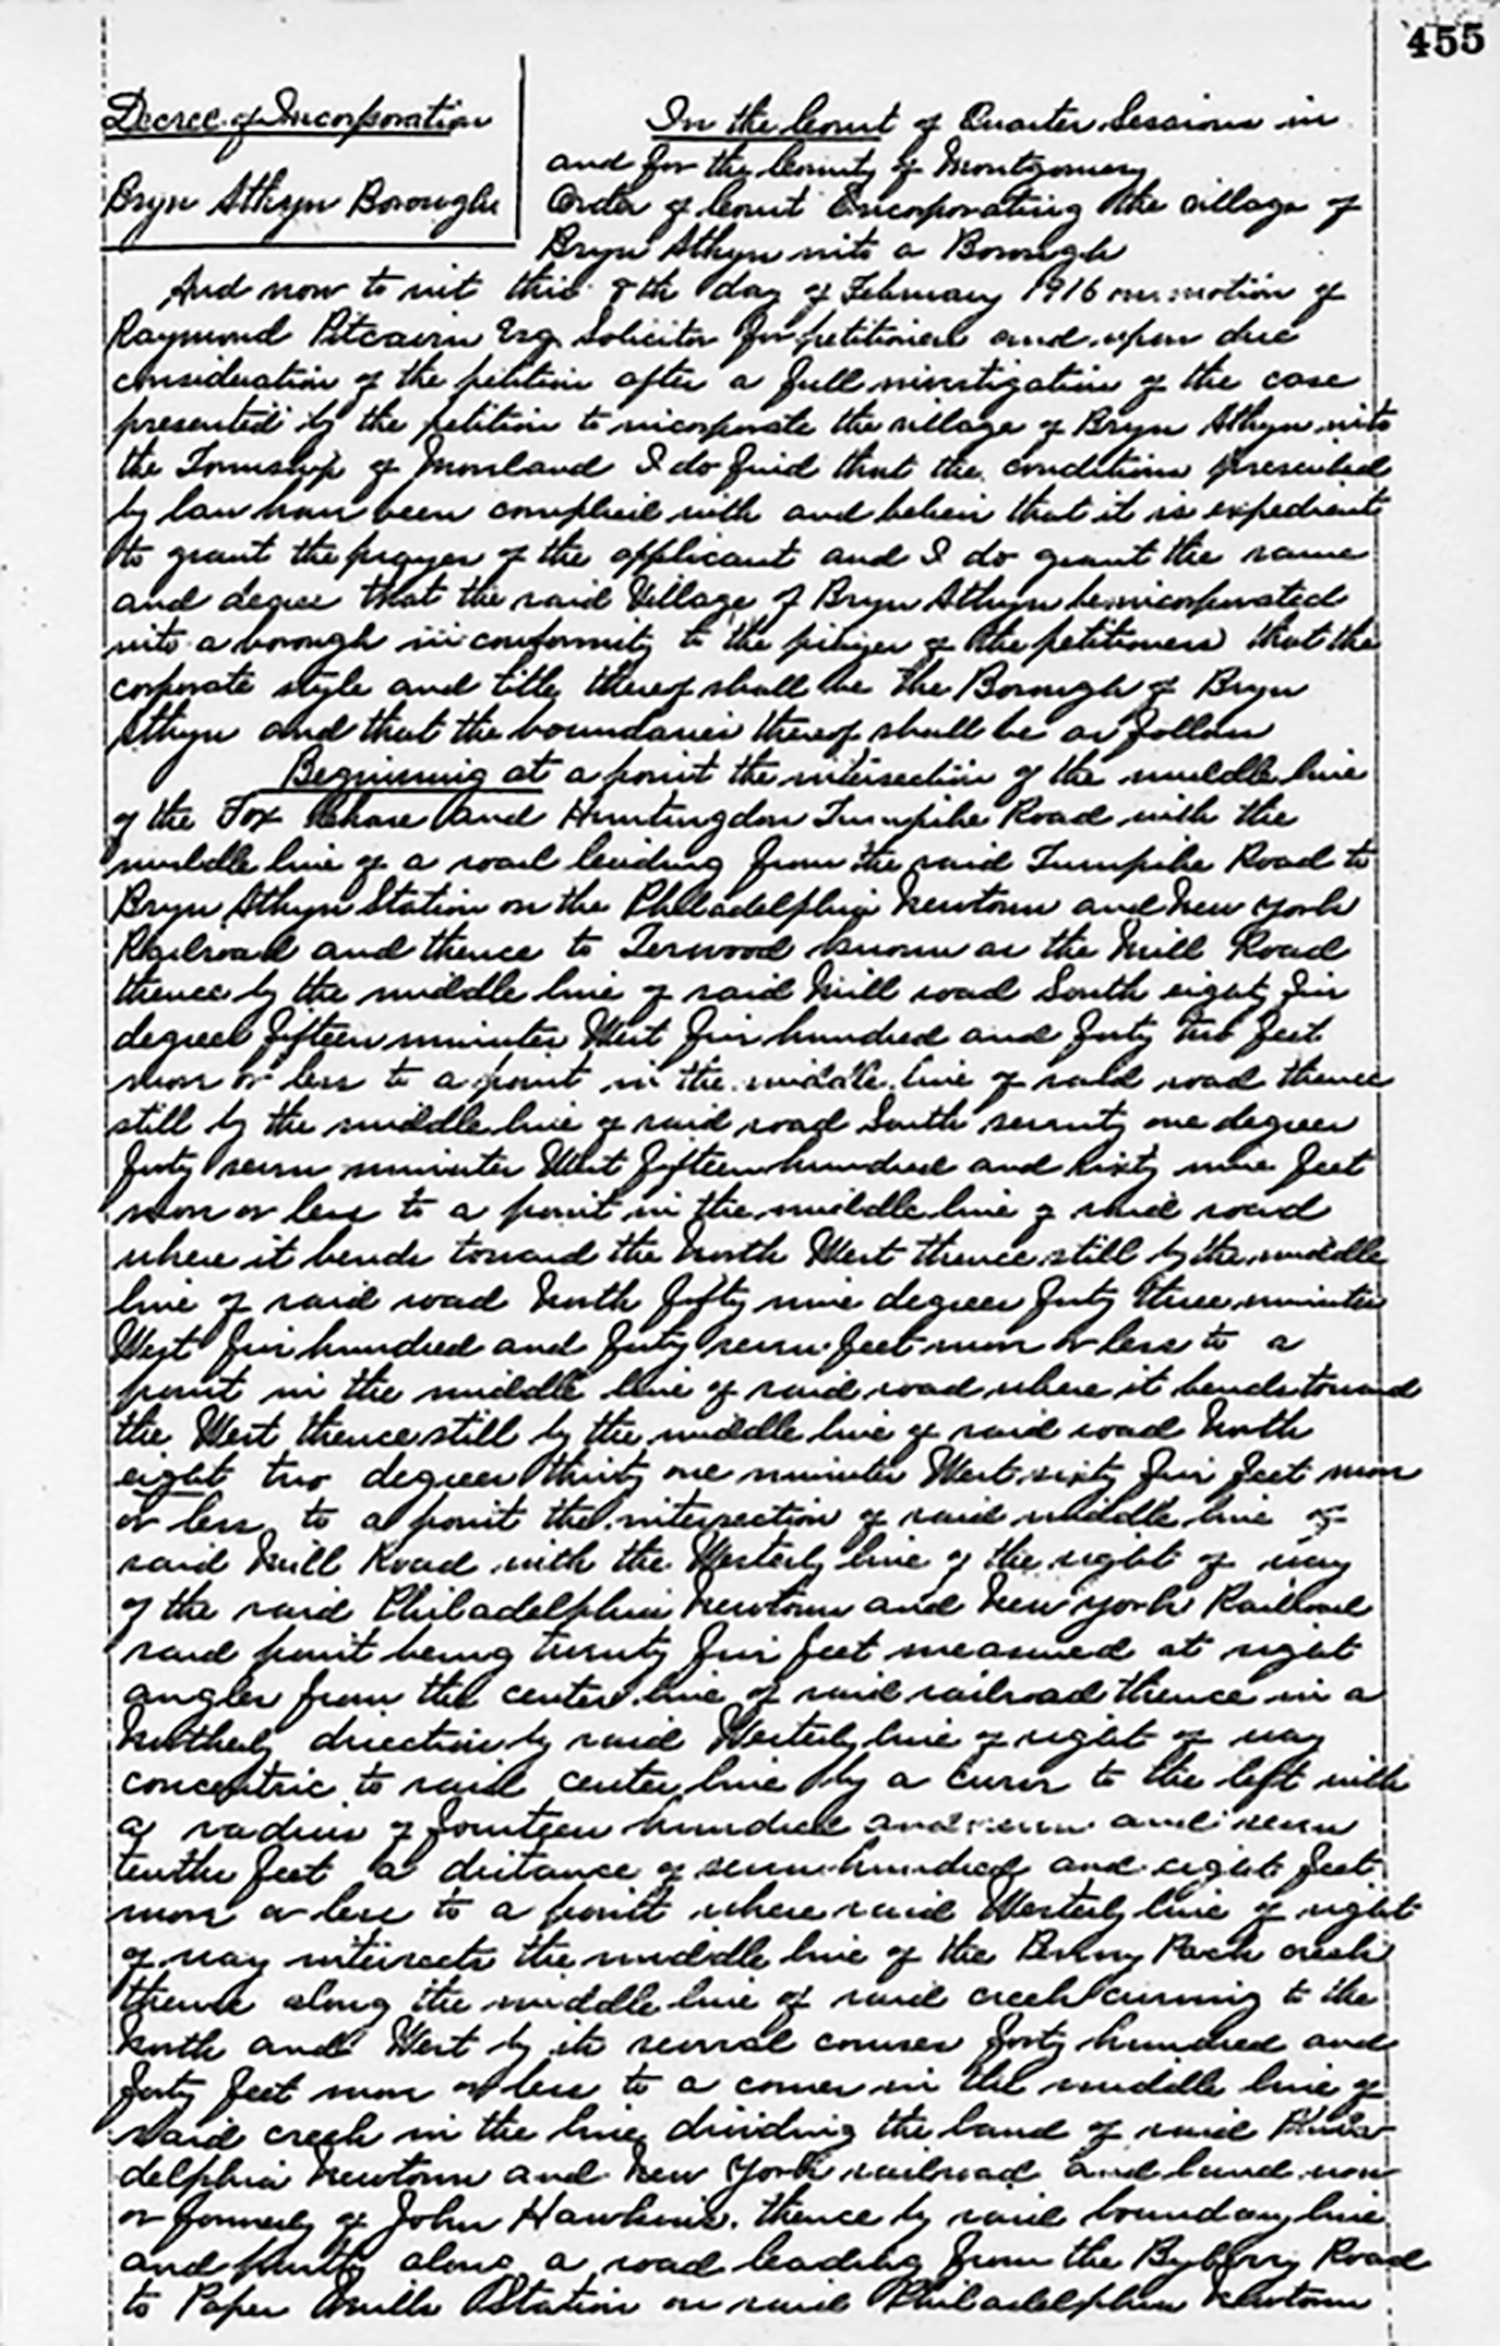 Figure 11: The Decree of Incorporation, written by Judge Aaron S. Swartz, was granted on February 8, 1916. Image courtesy of the Montgomery County Archives, Montgomery County, PA.